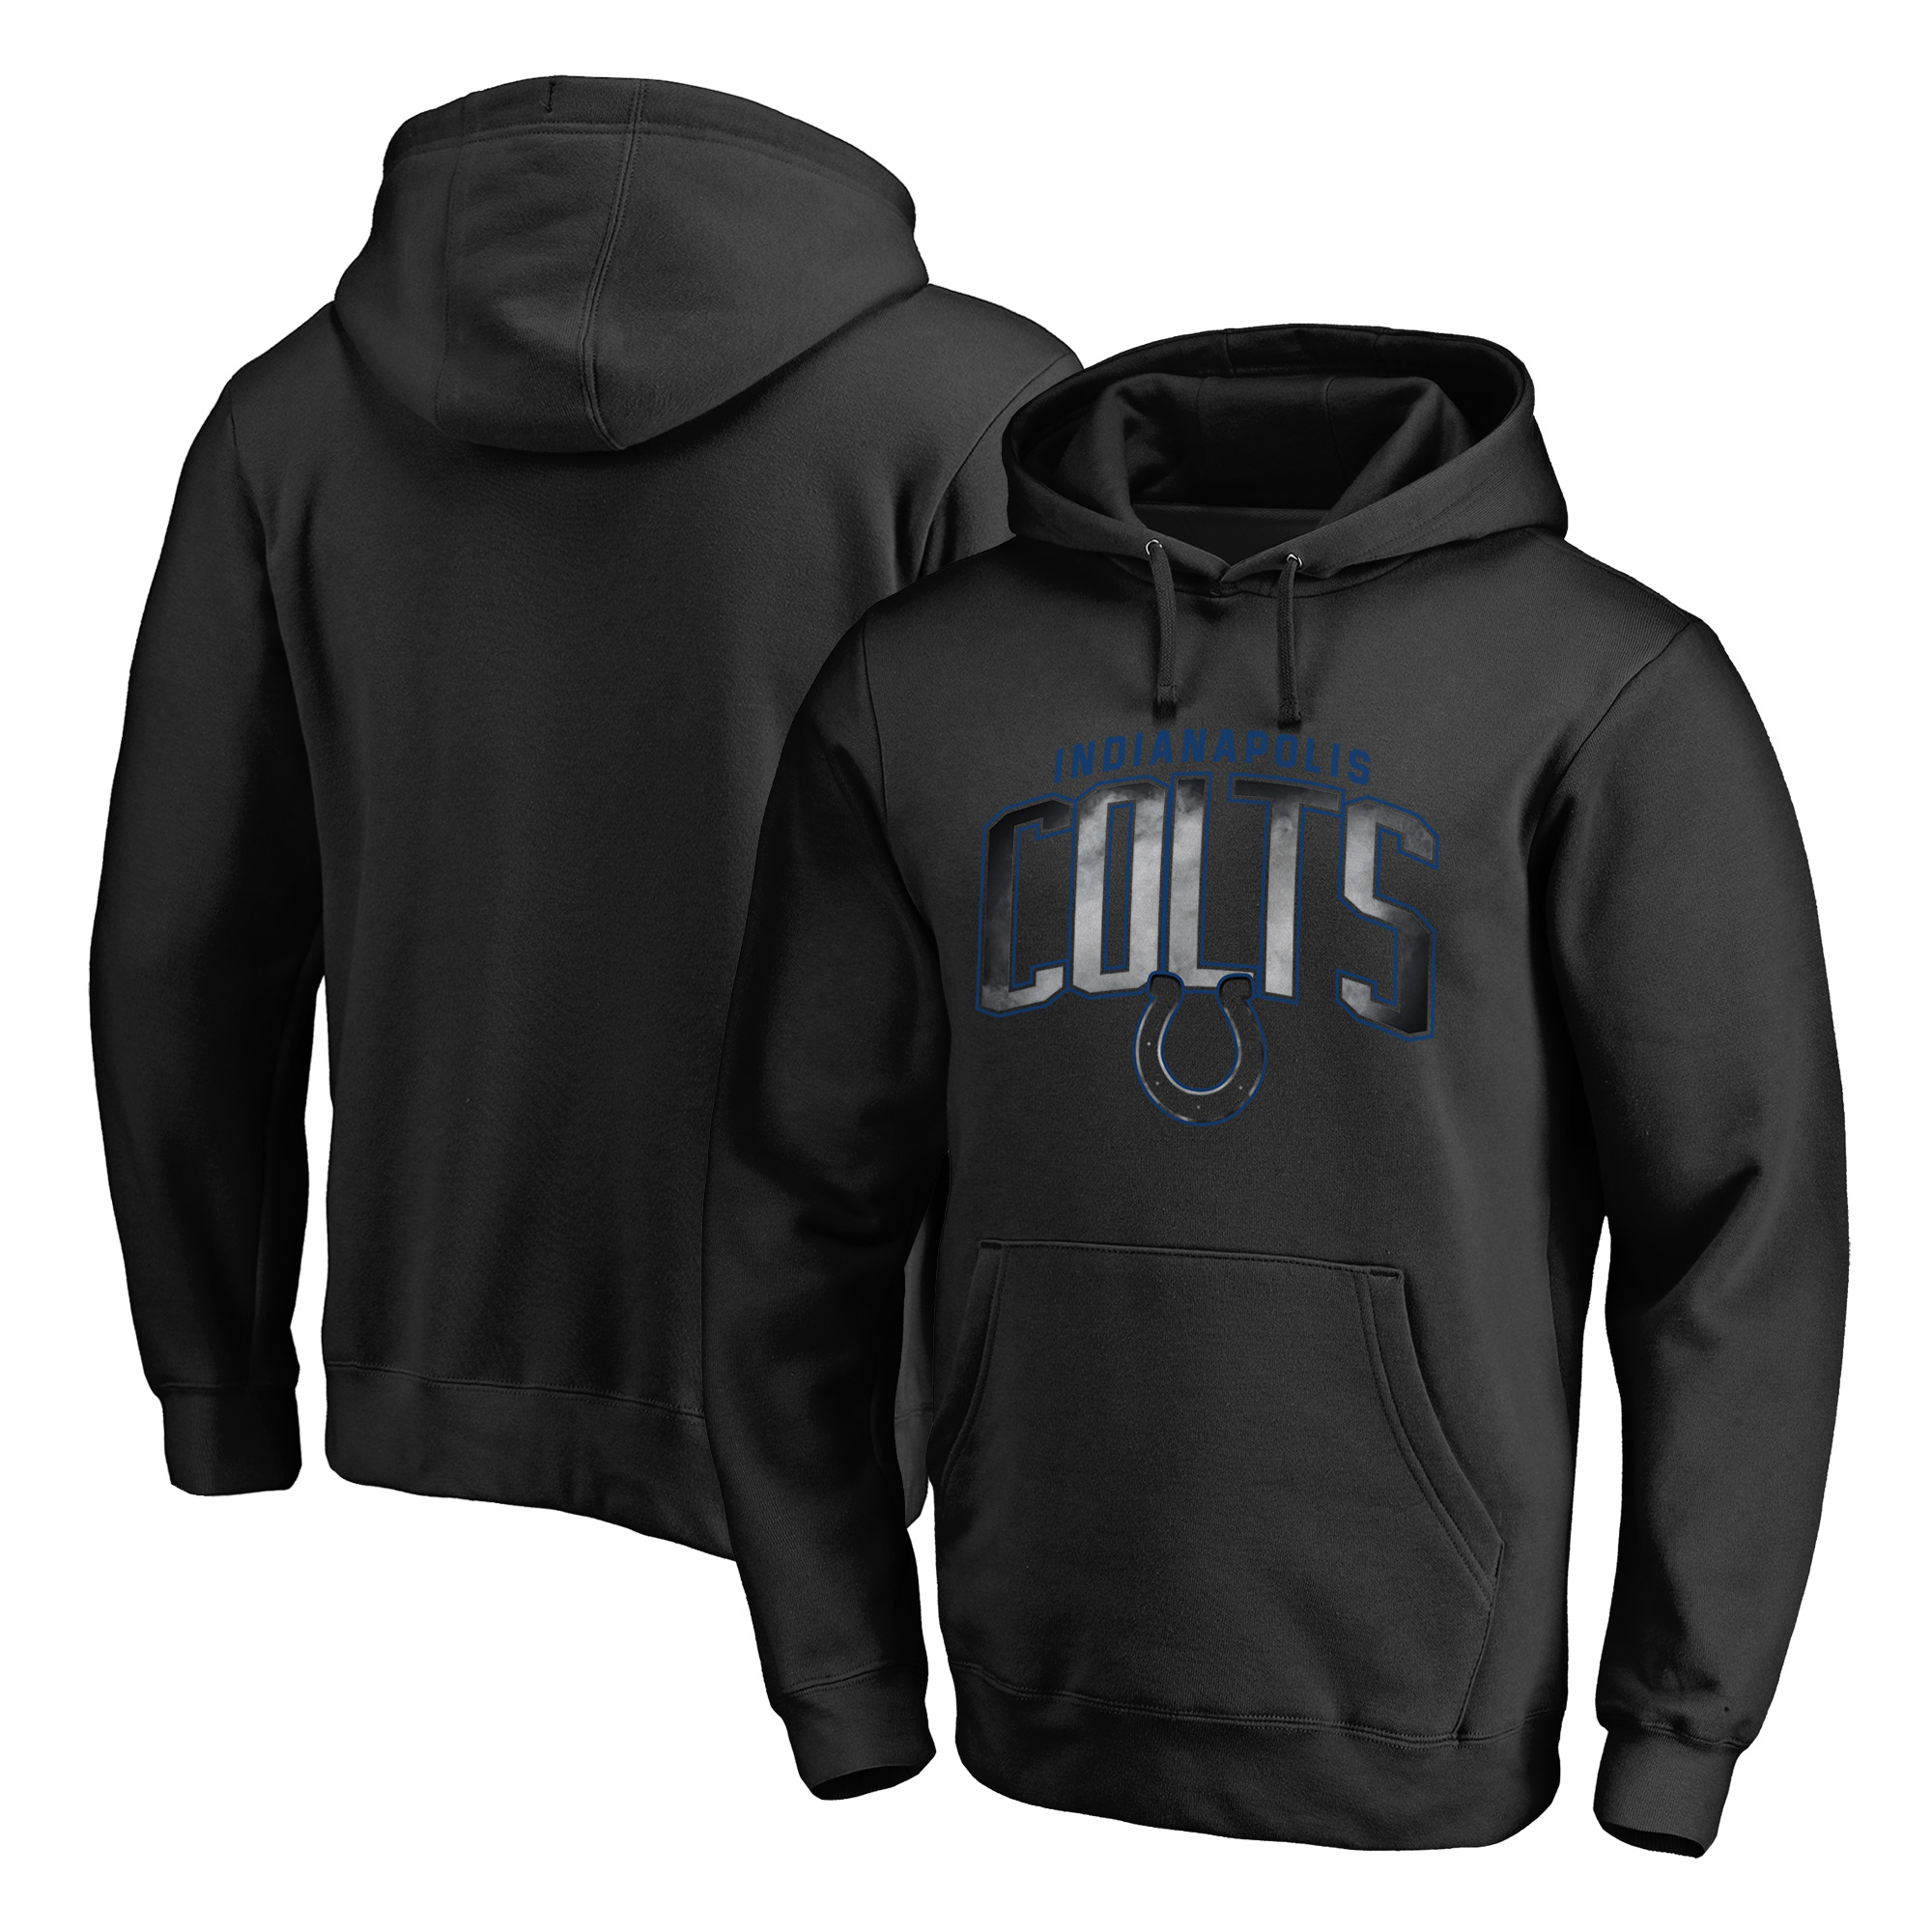 Indianapolis Colts NFL Pro Line by Fanatics Branded Big & Tall Arch Smoke Pullover Hoodie - Black - 4XB